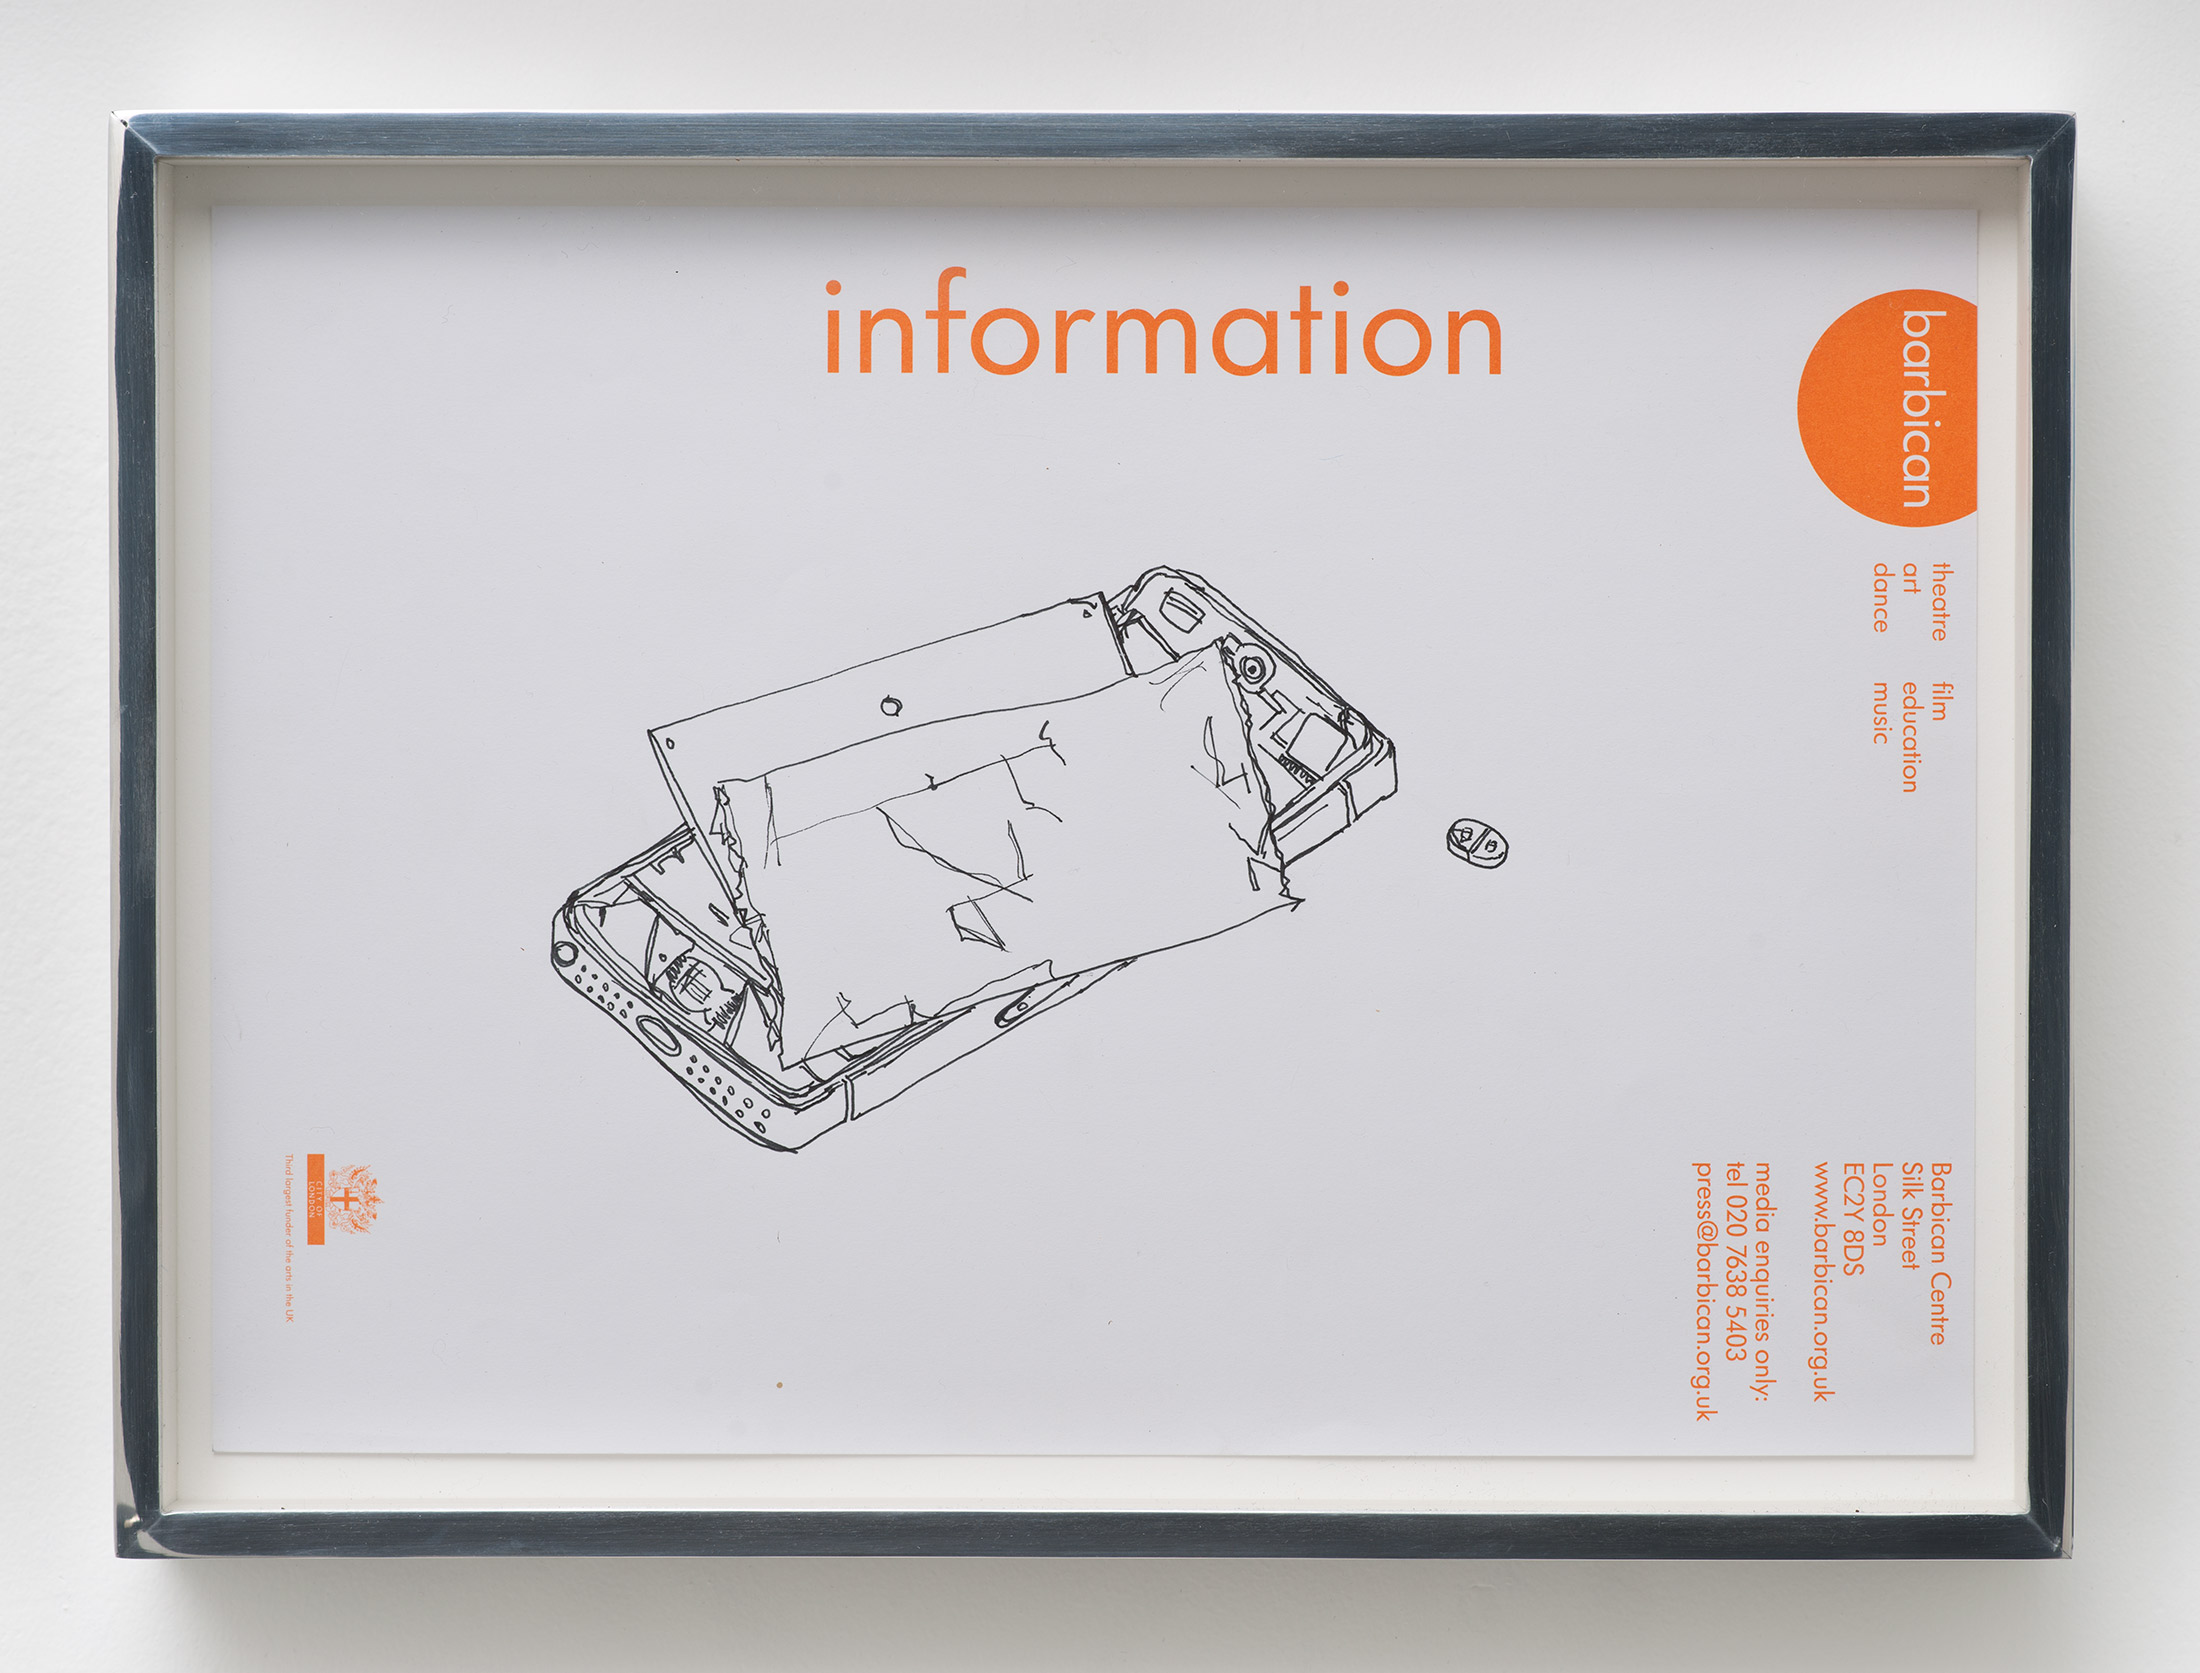 iPhone 5 A1429/Adderall, Amphetamine and Dextroamphetamine 10 mg, cor 132, Round, Multi-Segmented, Core Pharmaceuticals, Inc.: Barbican Centre, London, United Kingdom, October 4, 2014    2015   Ink on letterhead  9 1/2 x 12 7/8 inches   Drawings, 2014–